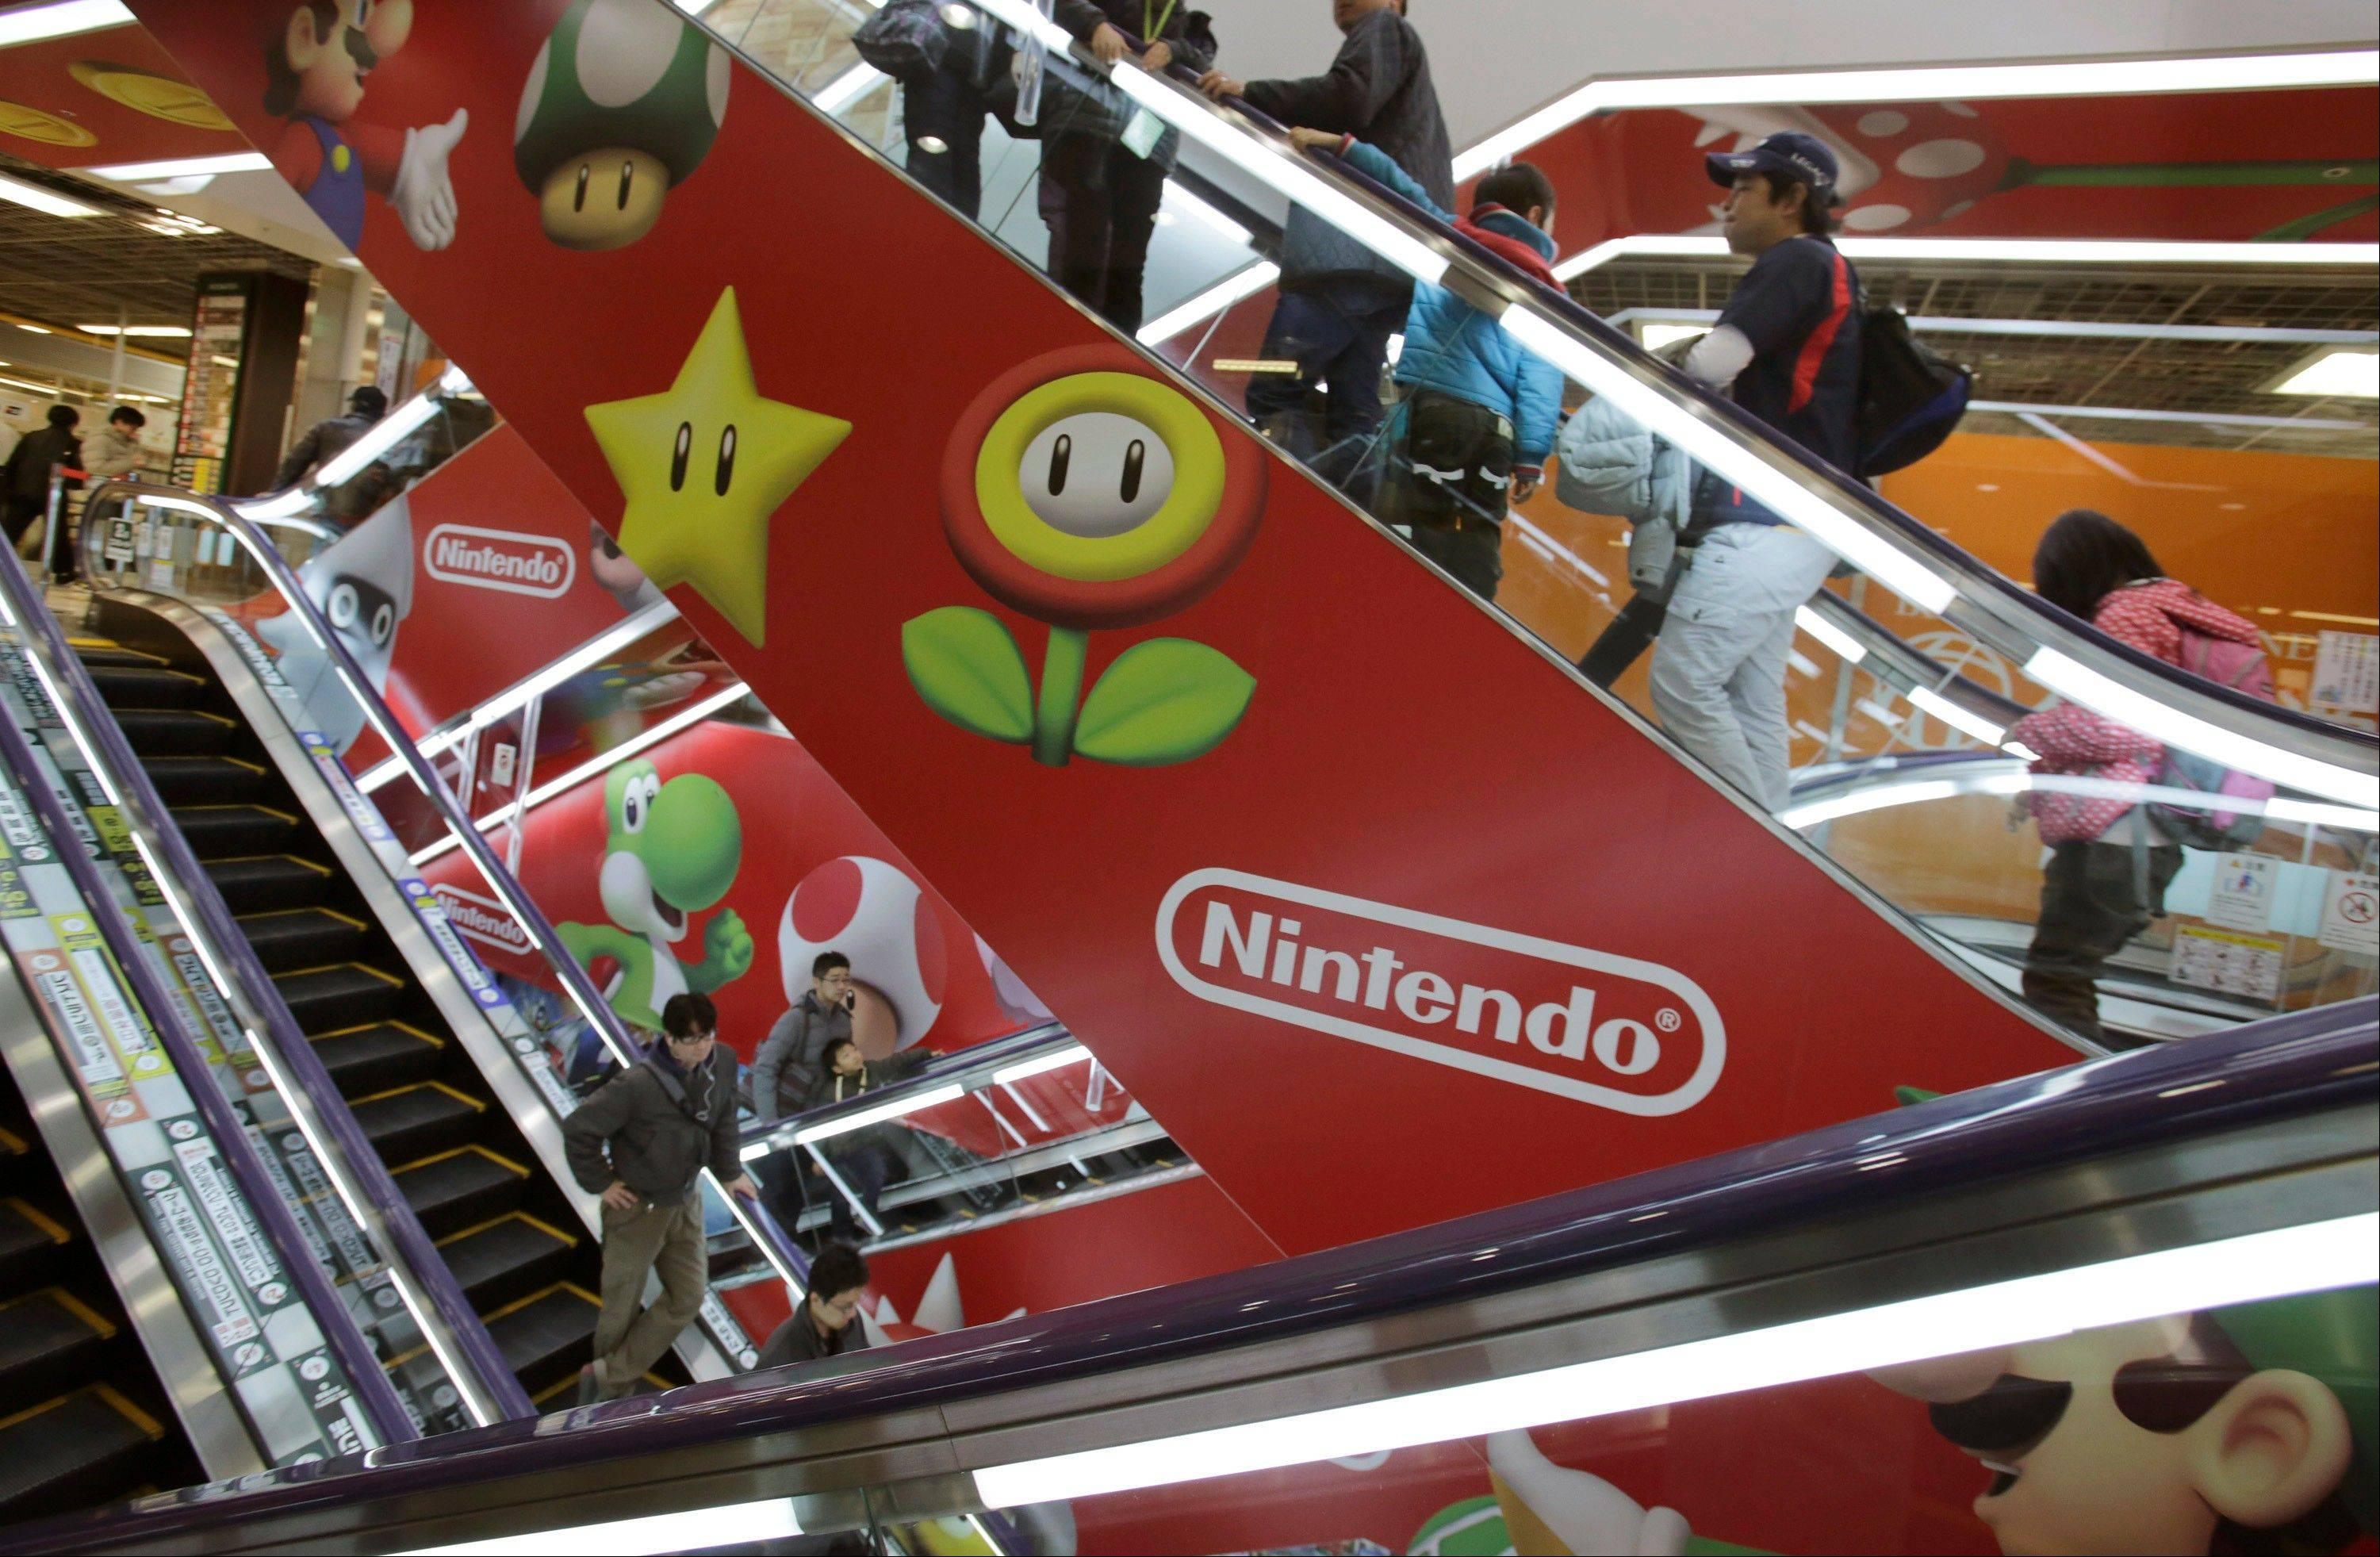 Profit at Nintendo Co. fell 30 percent in the first nine months of the fiscal year as sales of Wii U home consoles, 3DS devices and game software languished. Top executives announced they would take pay cuts.